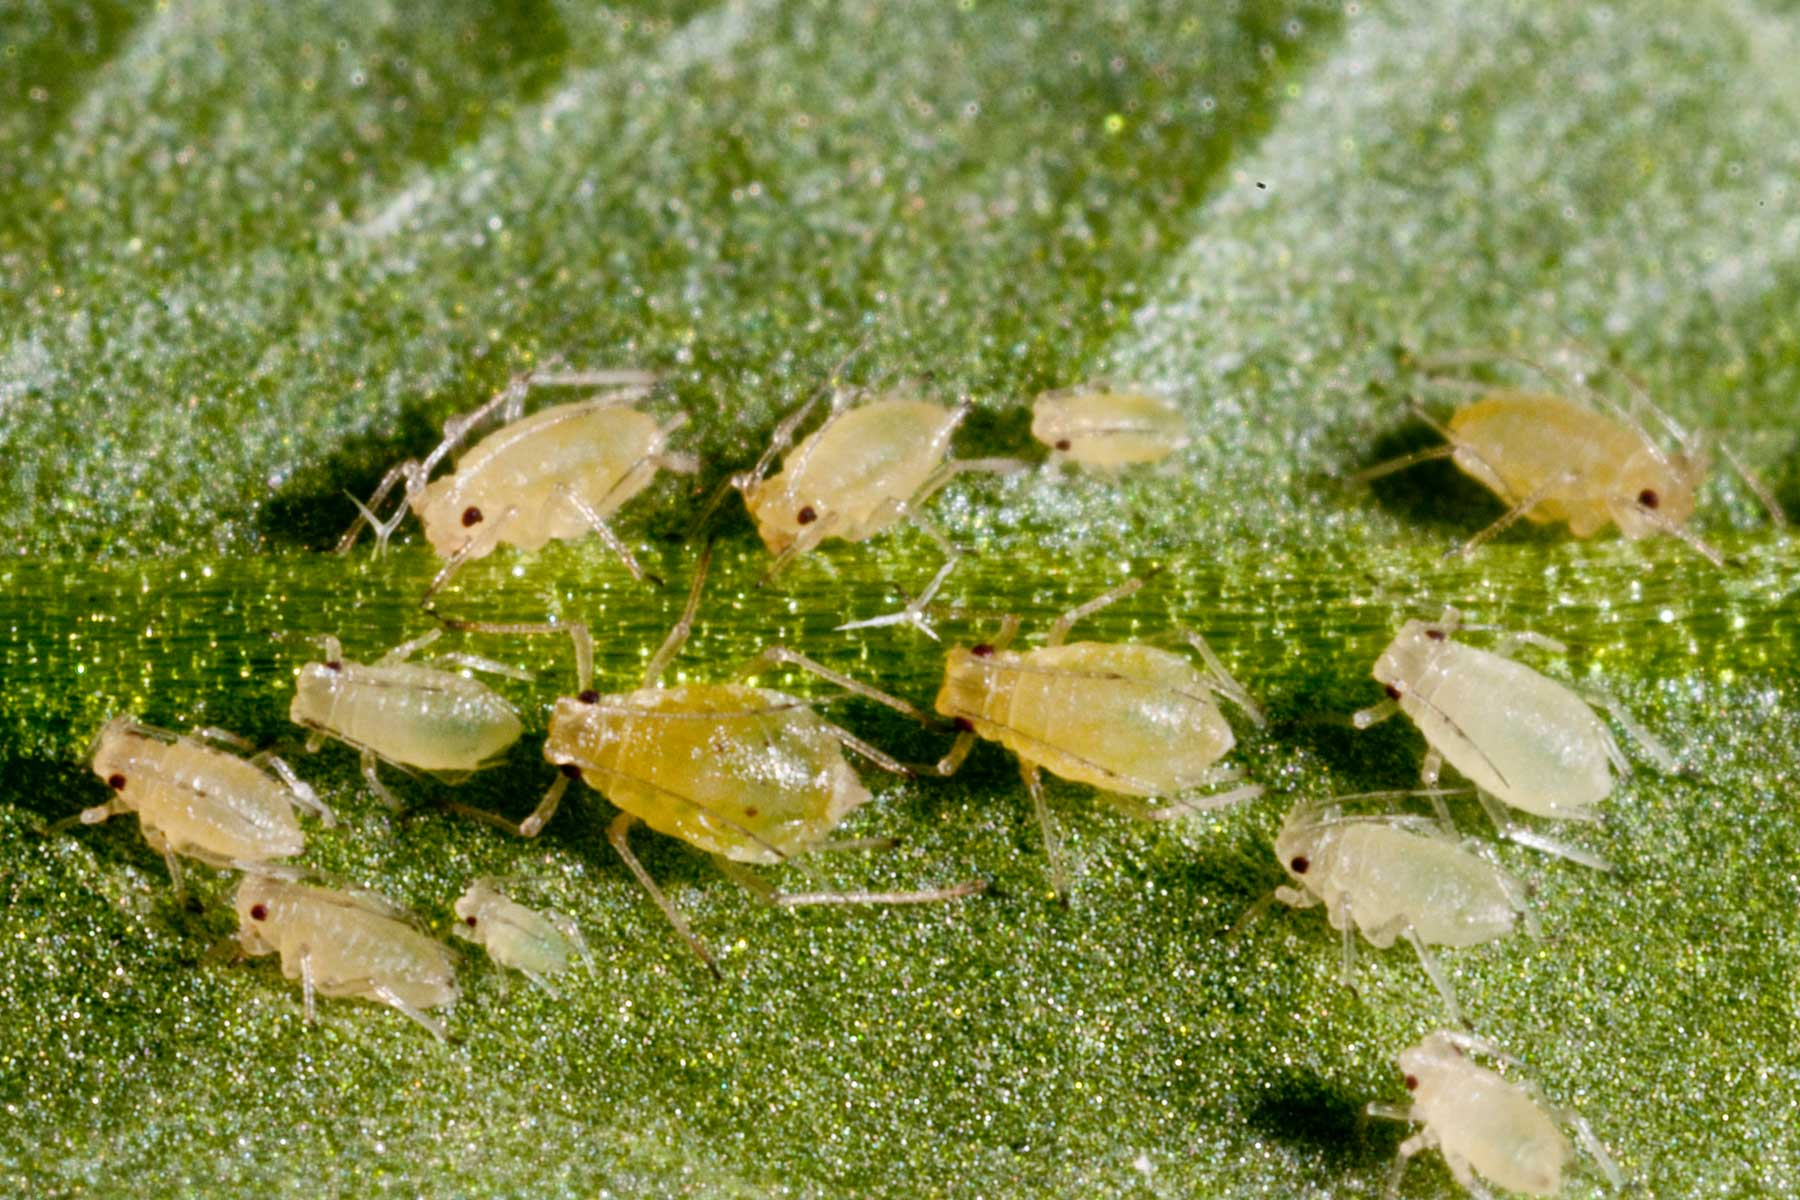 Aphids - the versatile agricultural nuisance